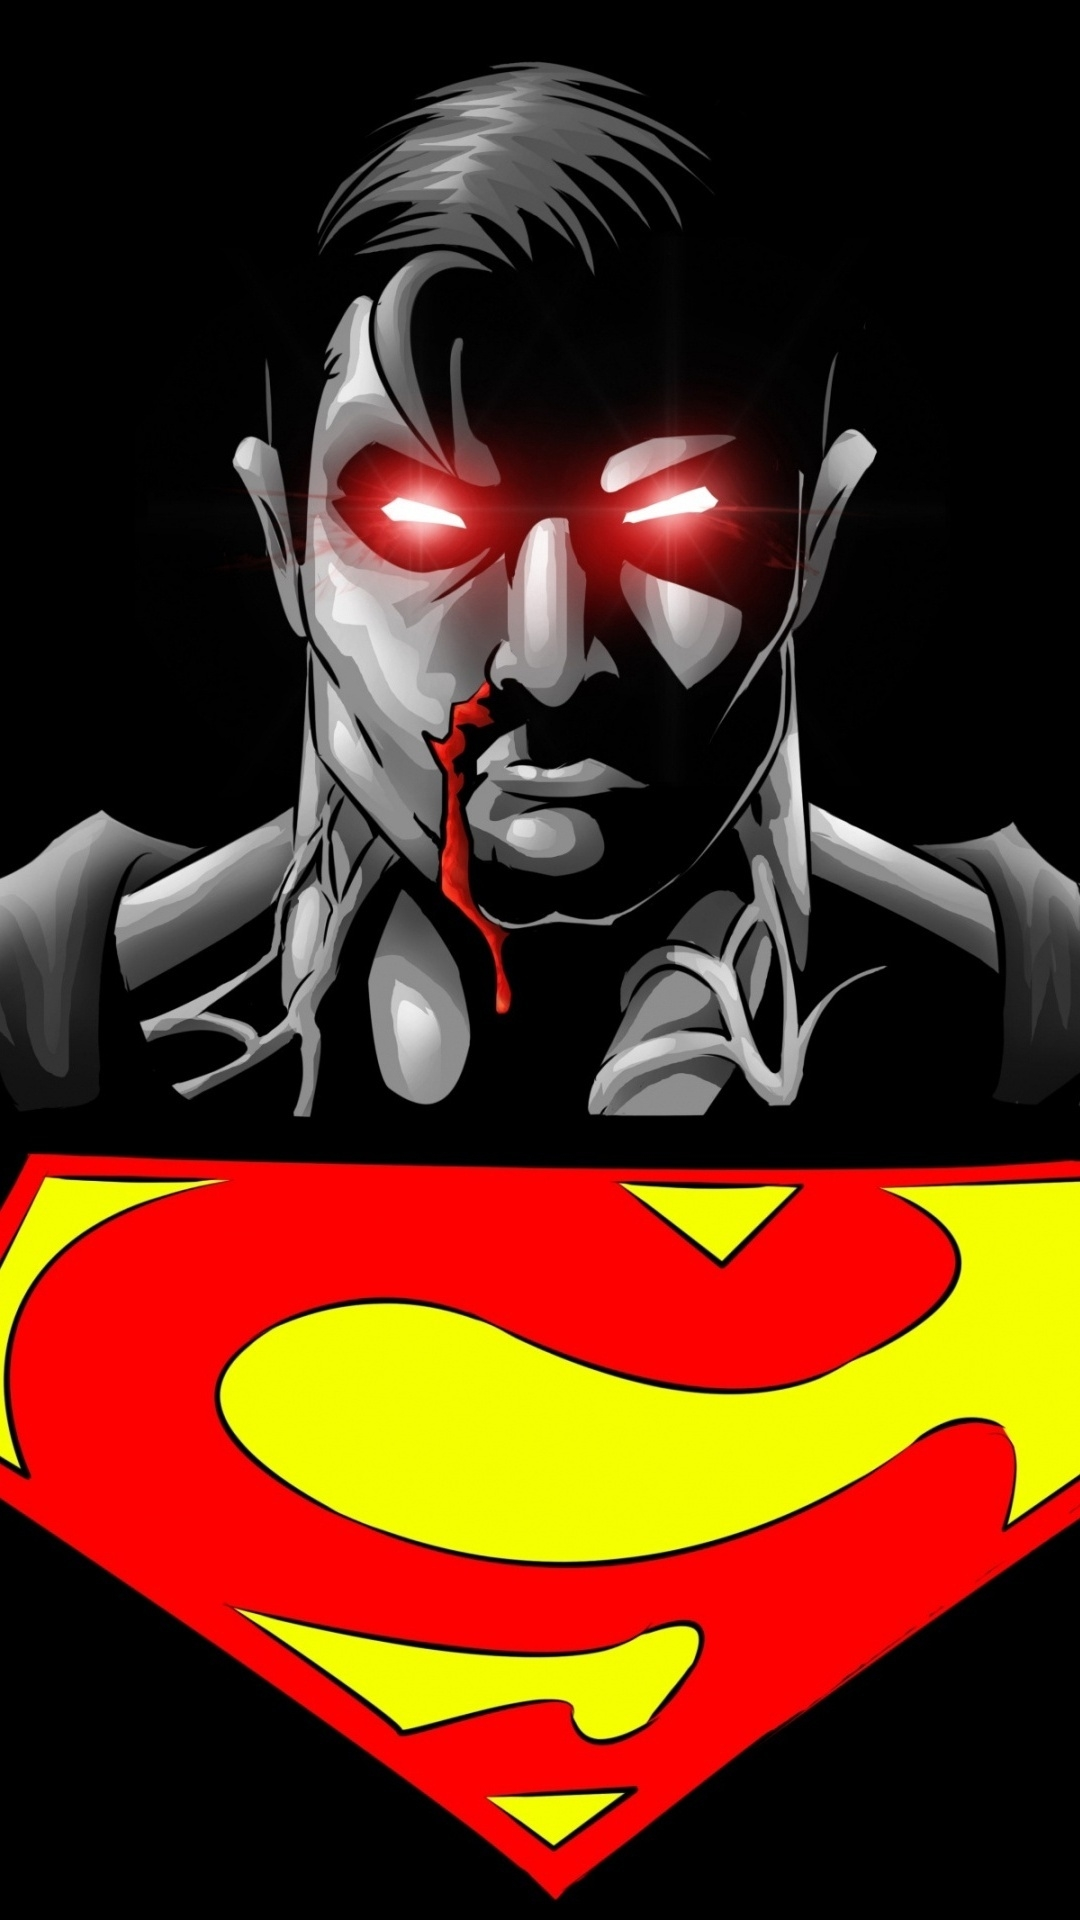 Simple   Wallpaper Home Screen Superhero - superman-superhero-black-background-android-best-wallpaper  2018_299981.jpg